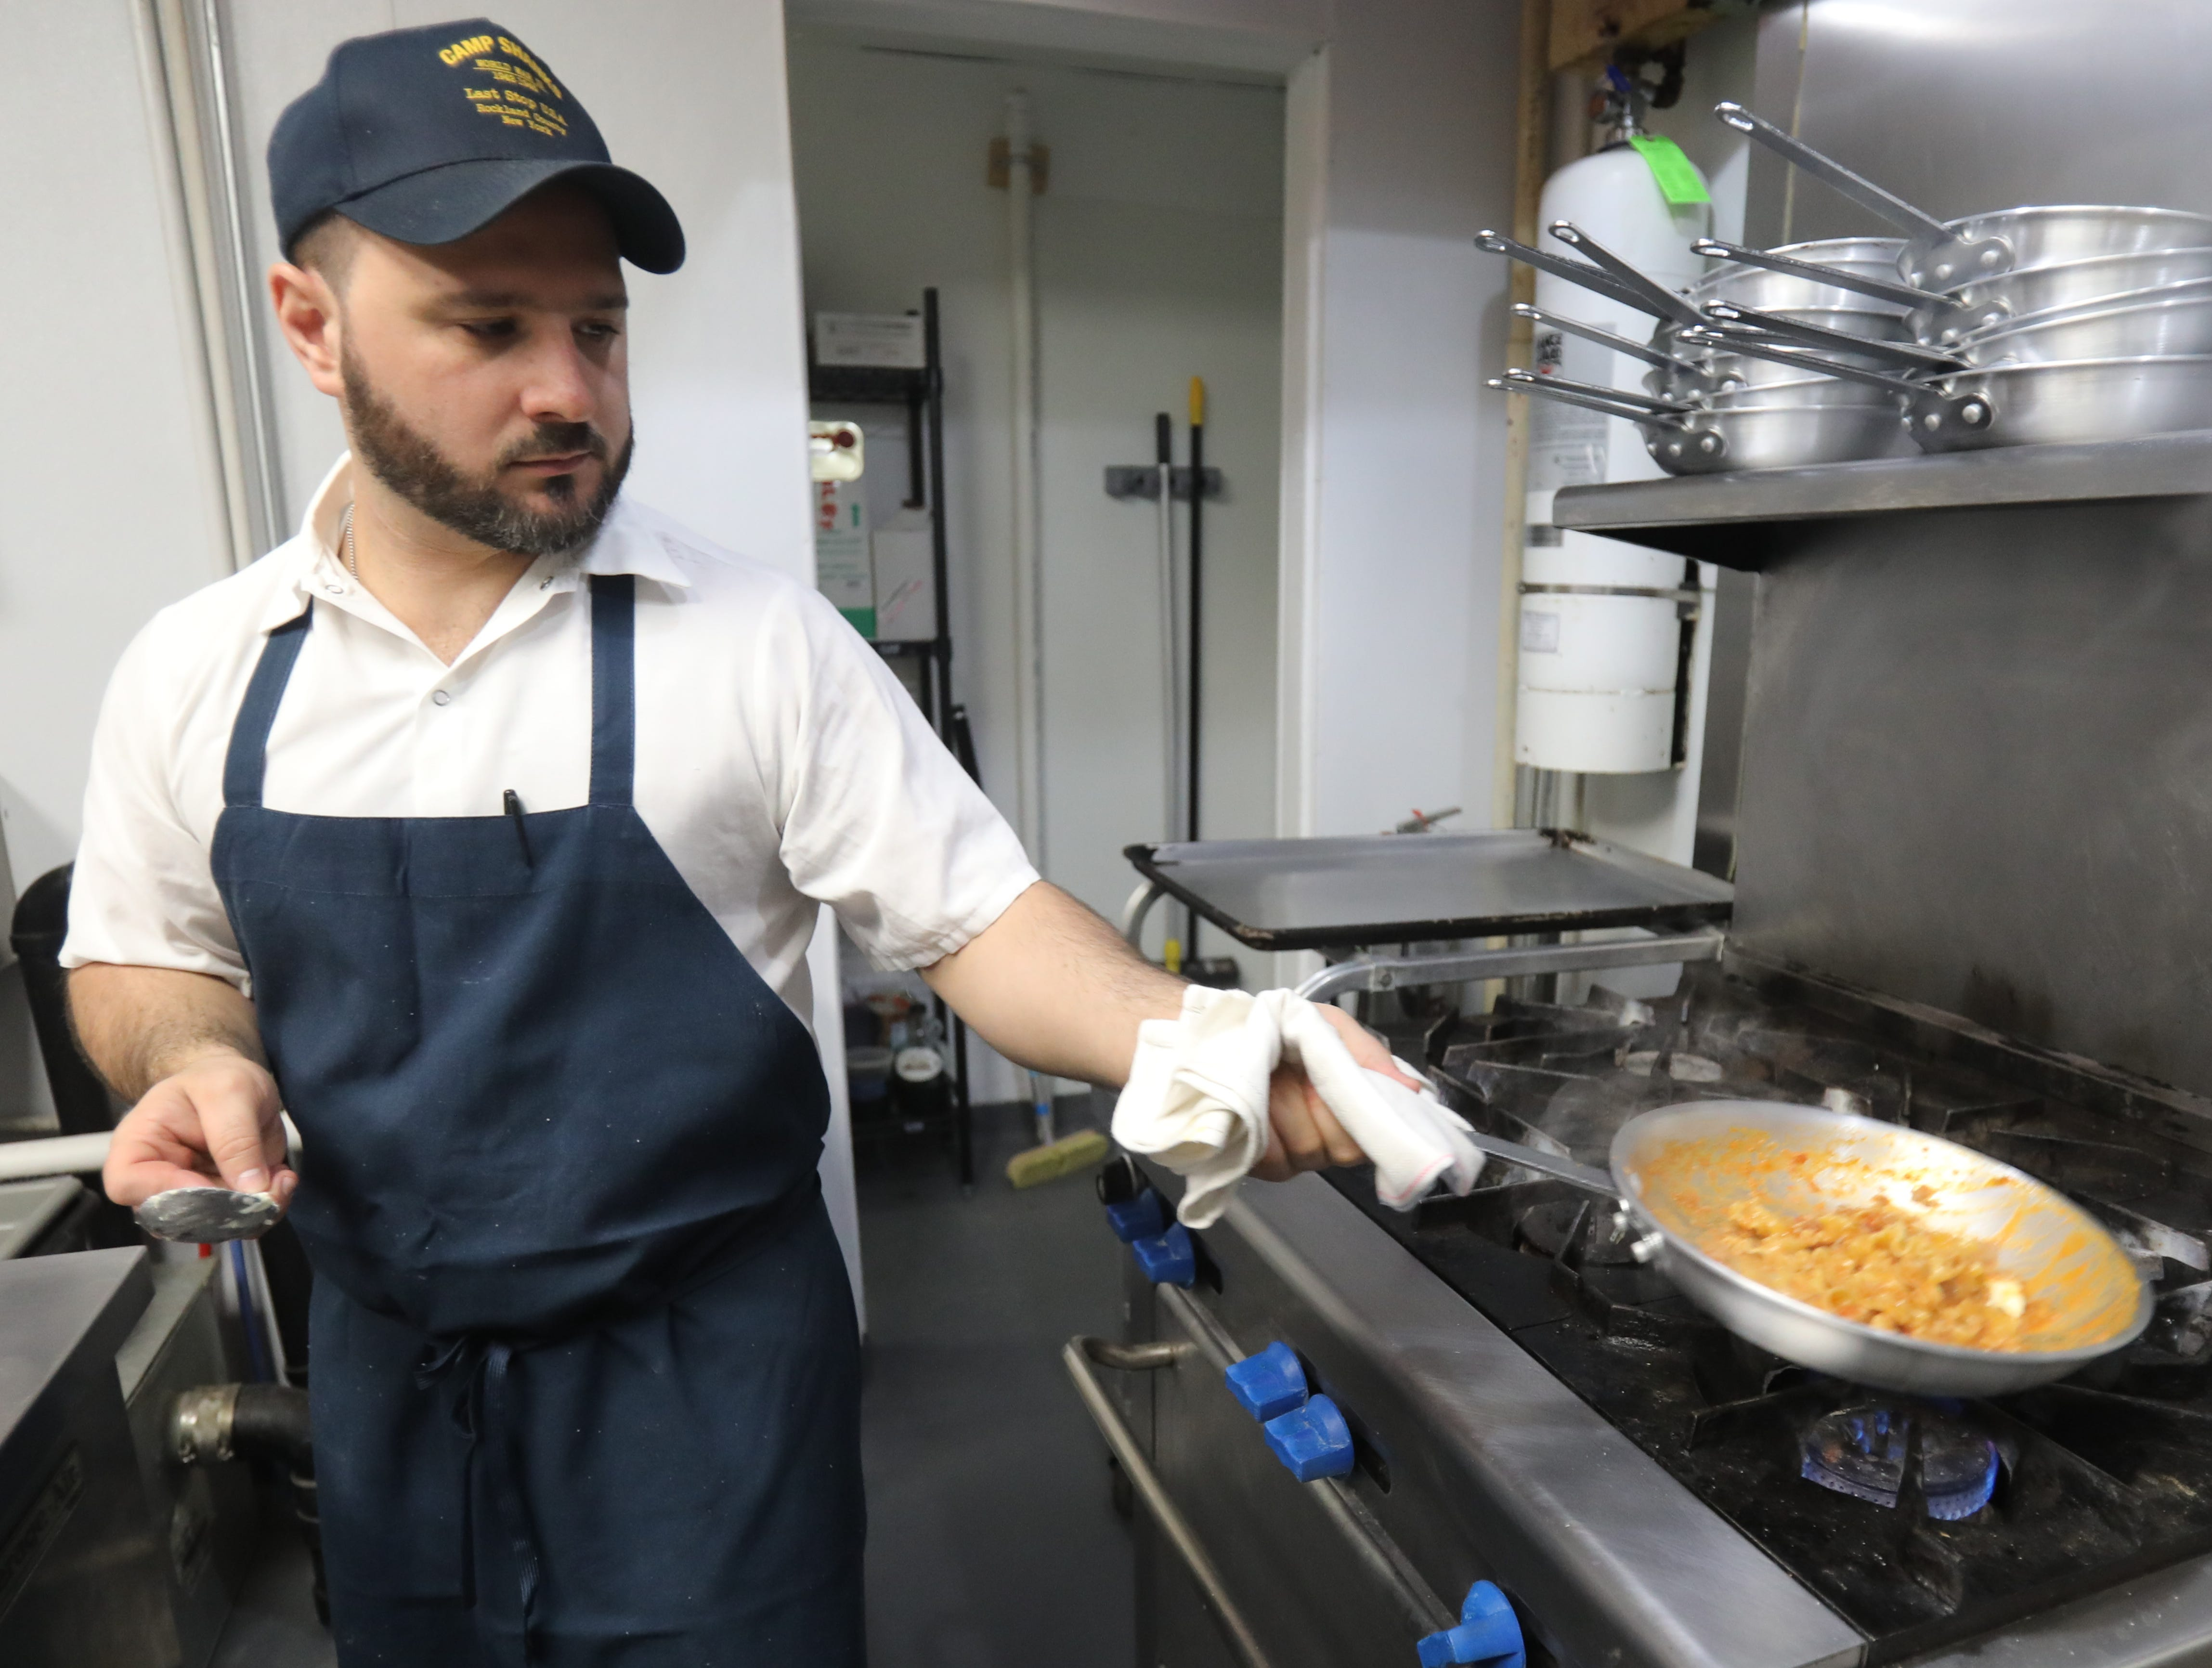 Tony Scotto, owner of DPNB Pasta & Provisions tripoline at the restaurant in Nyack on Jan. 31, 2019.